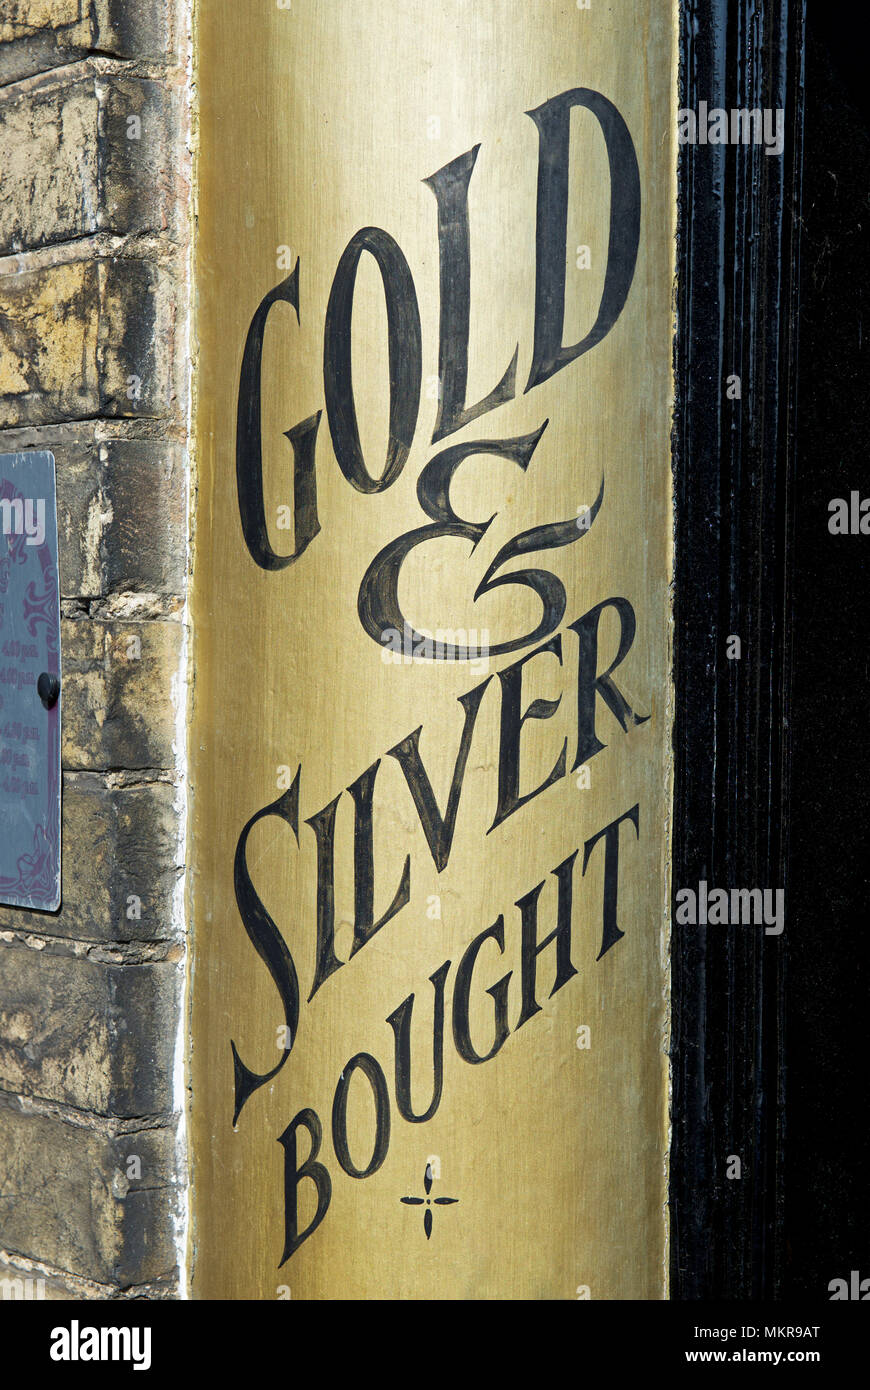 Shop sign: gold & silver bought, England UK - Stock Image